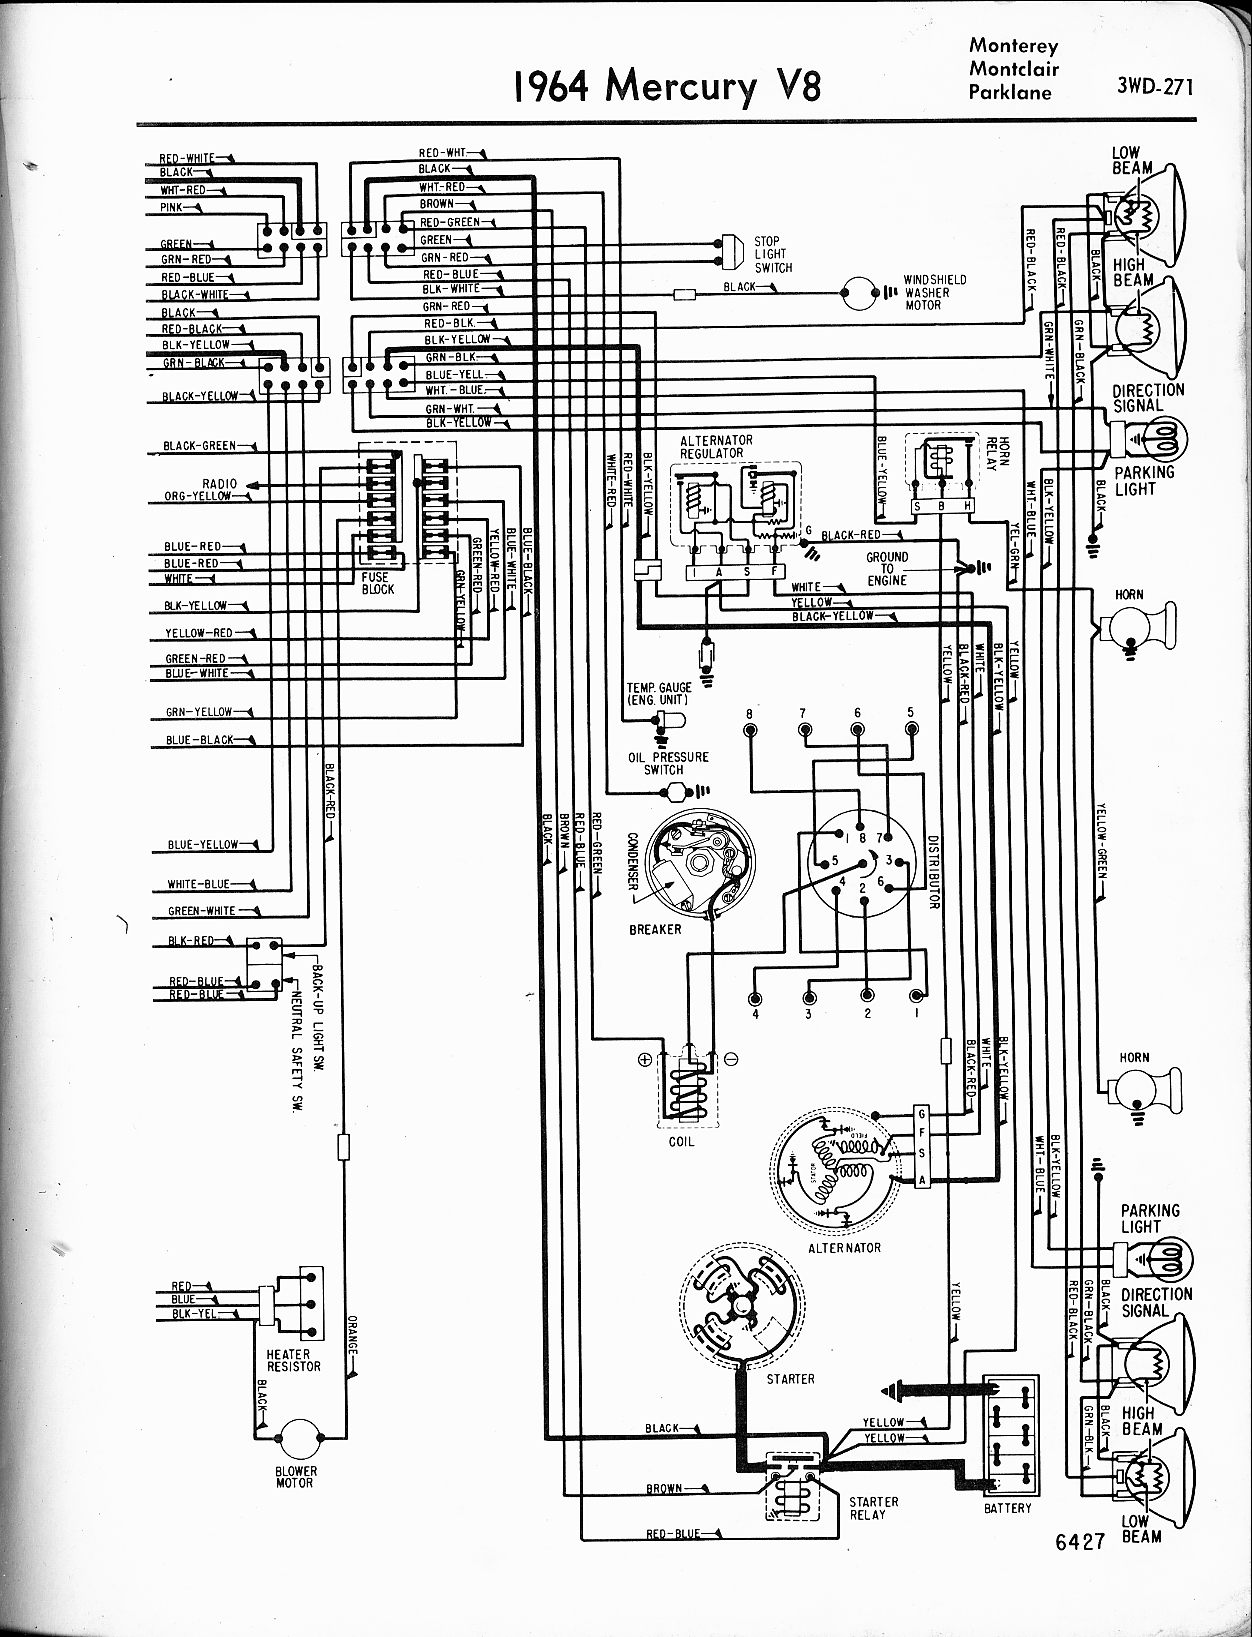 MWire5765 271 mercury wiring diagrams the old car manual project 1963 corvette wiring diagram at gsmx.co